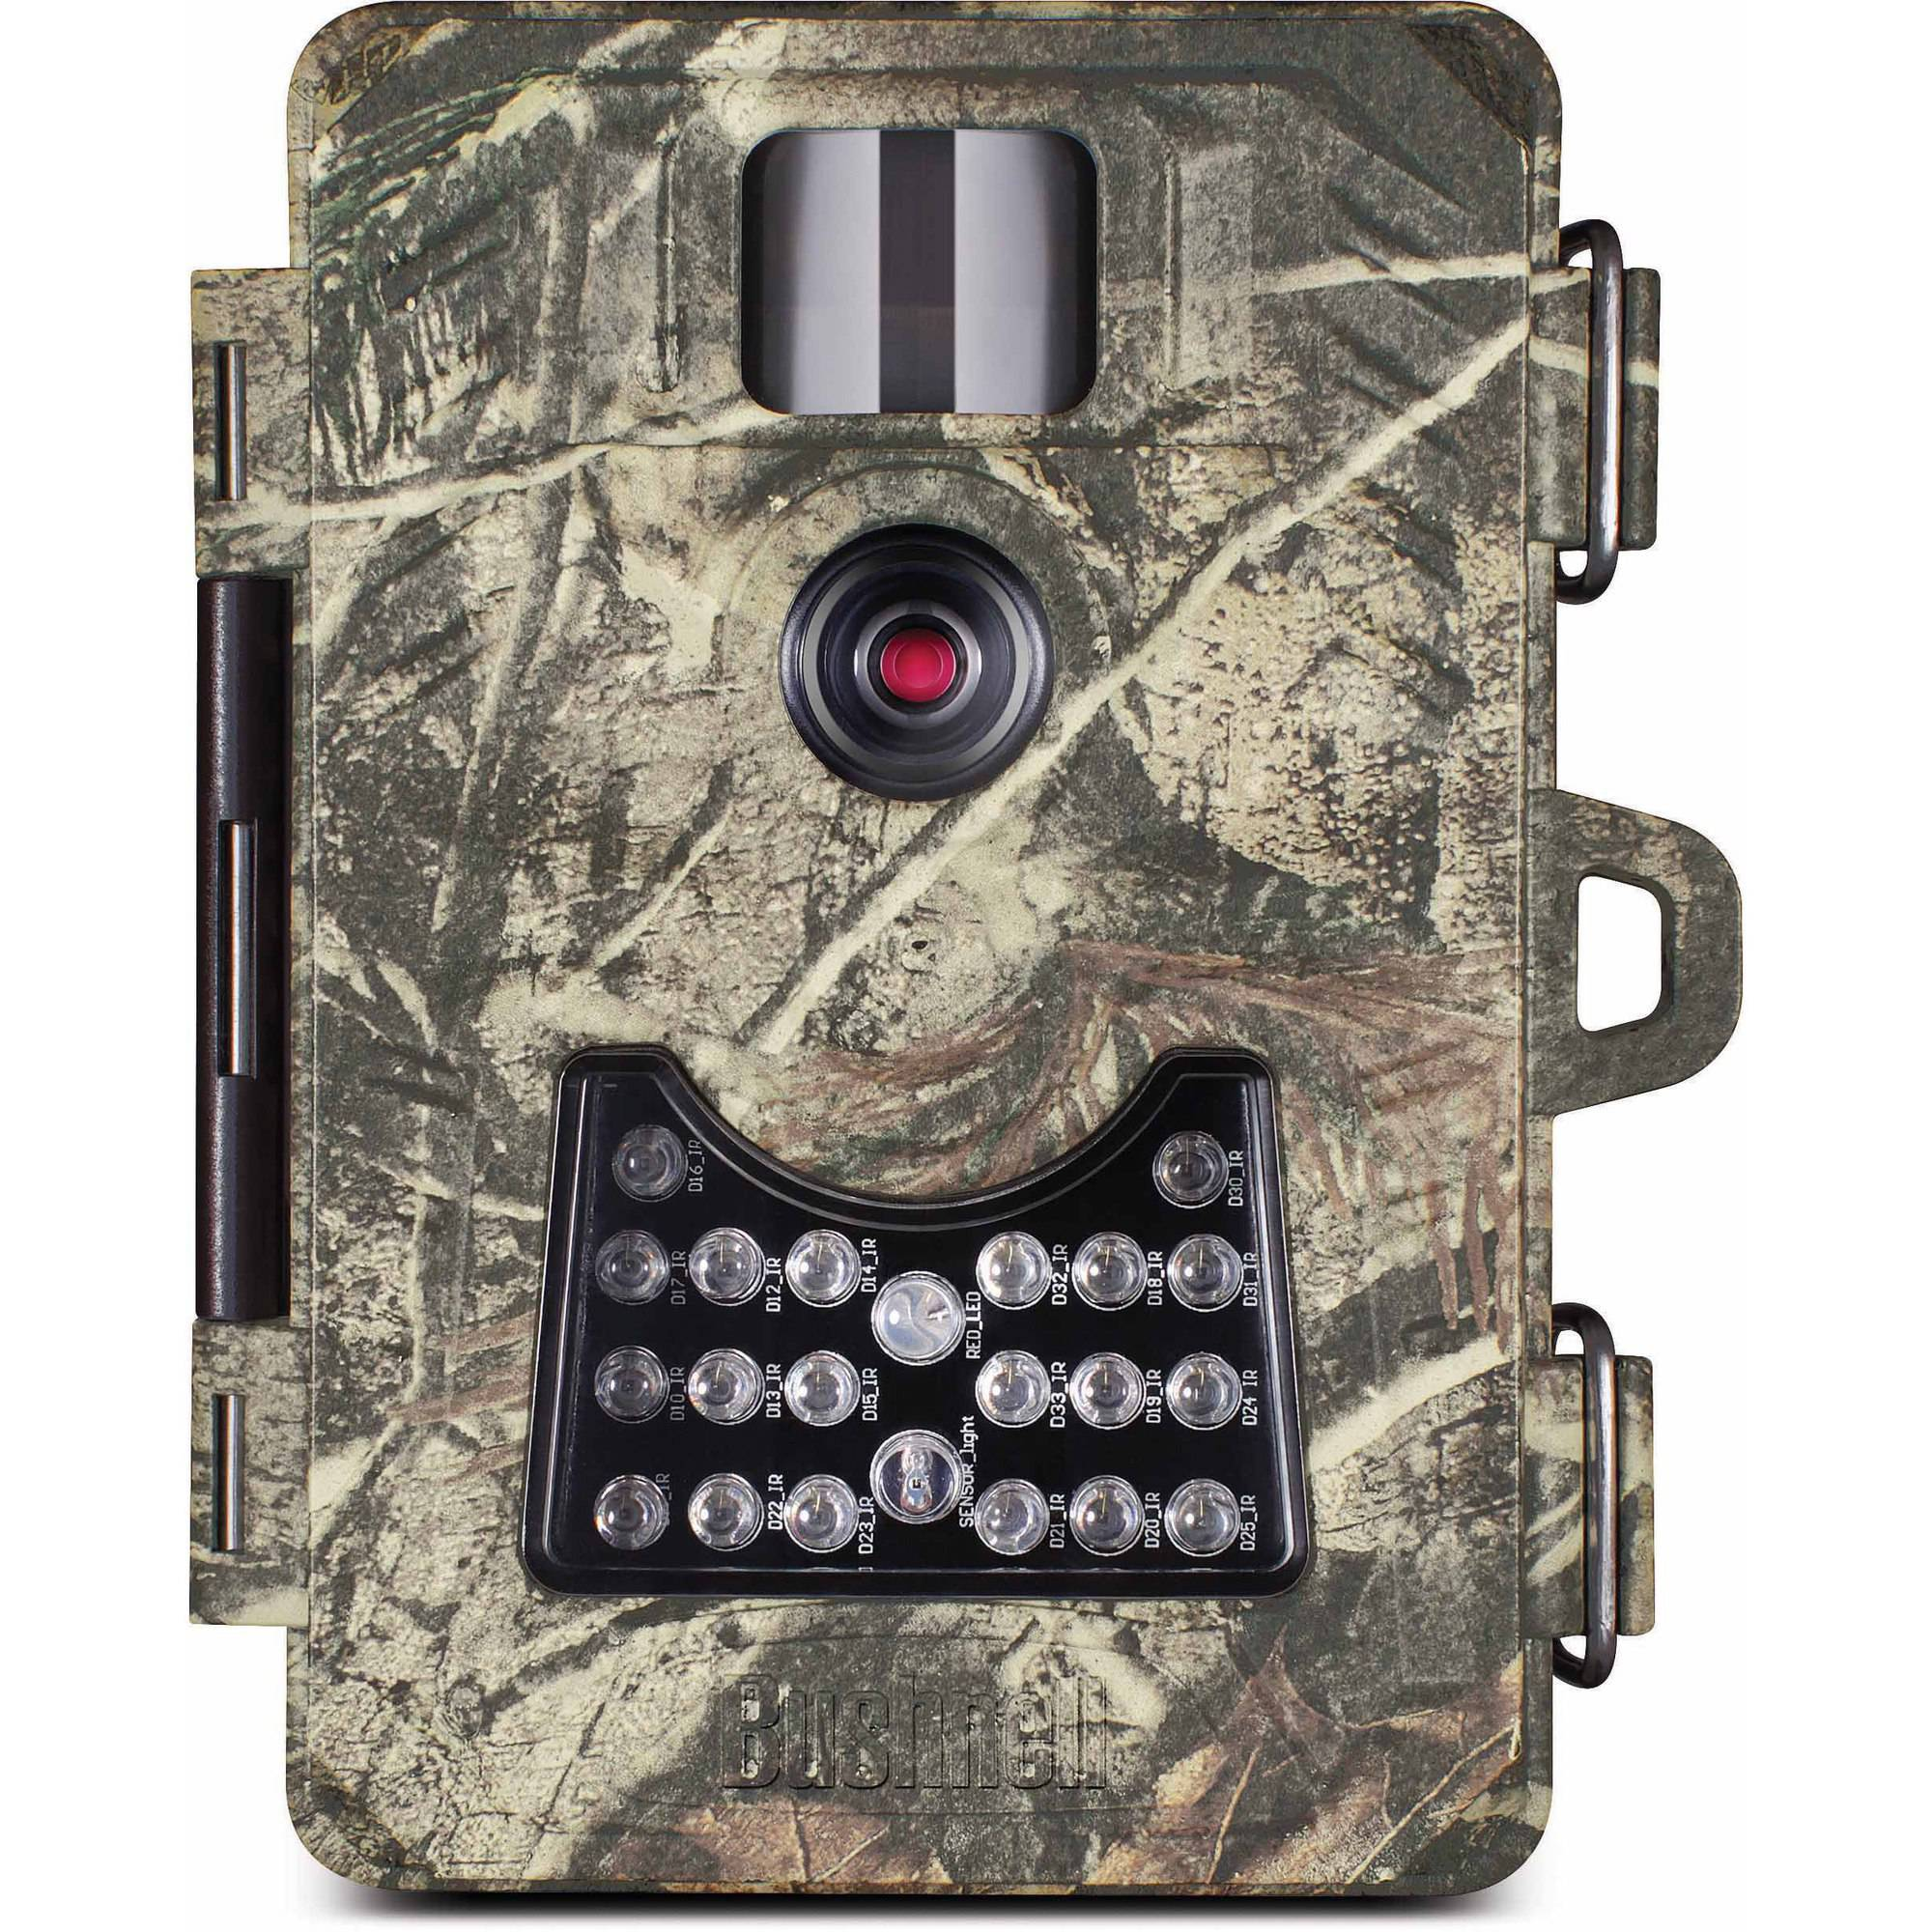 Bushnell 8MP Trail Camera, Camo